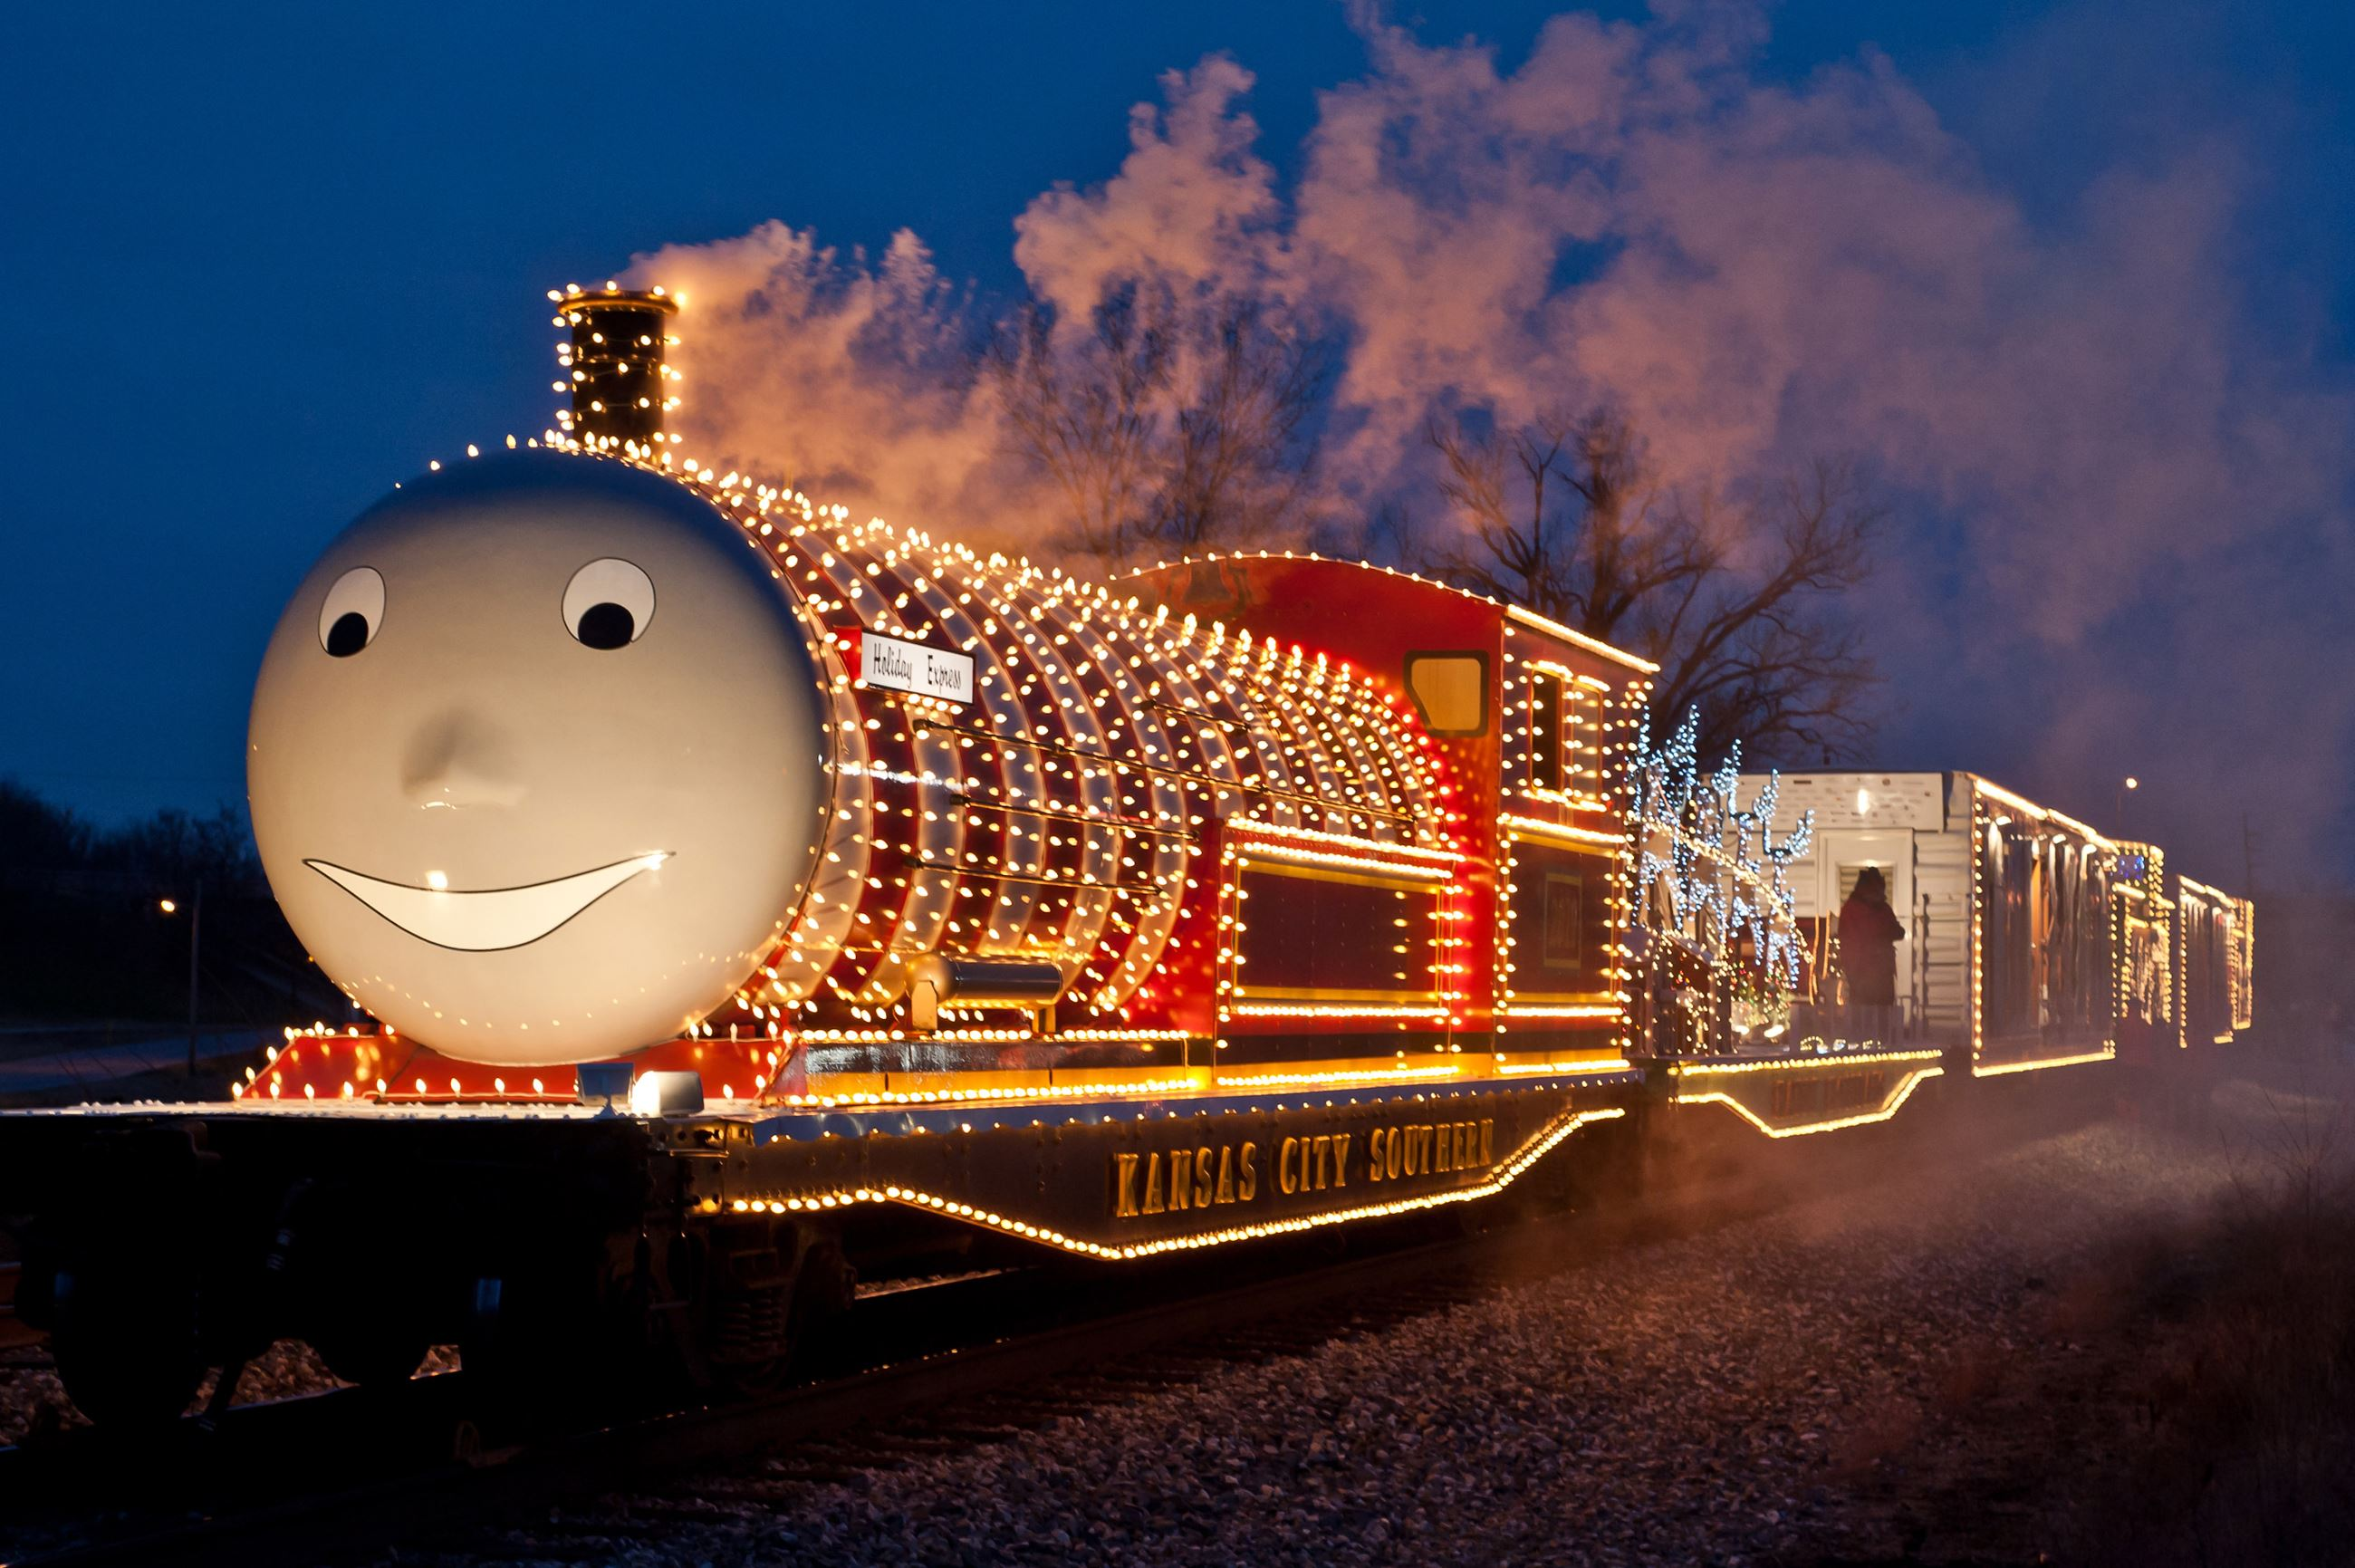 Kansas City Southern's Holiday Express Train